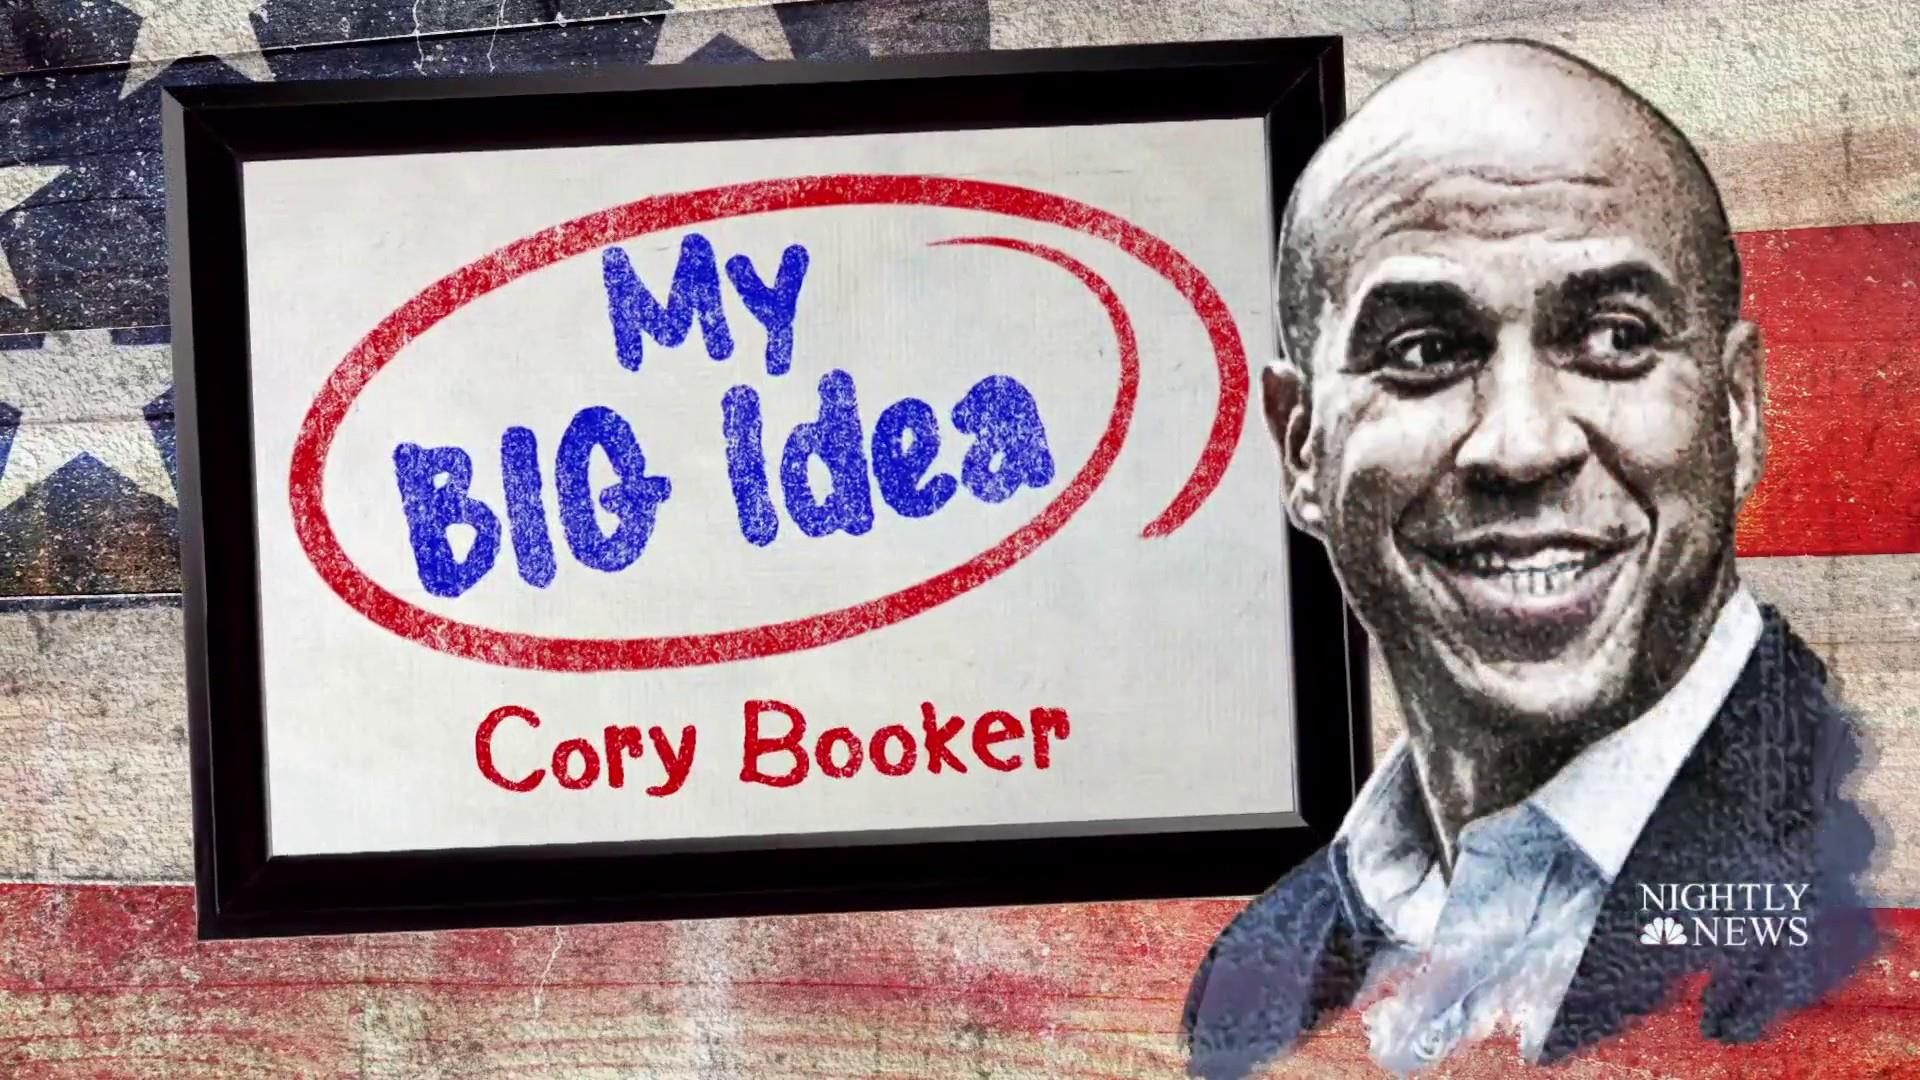 Cory Booker shares his Big Idea for 'baby bonds'